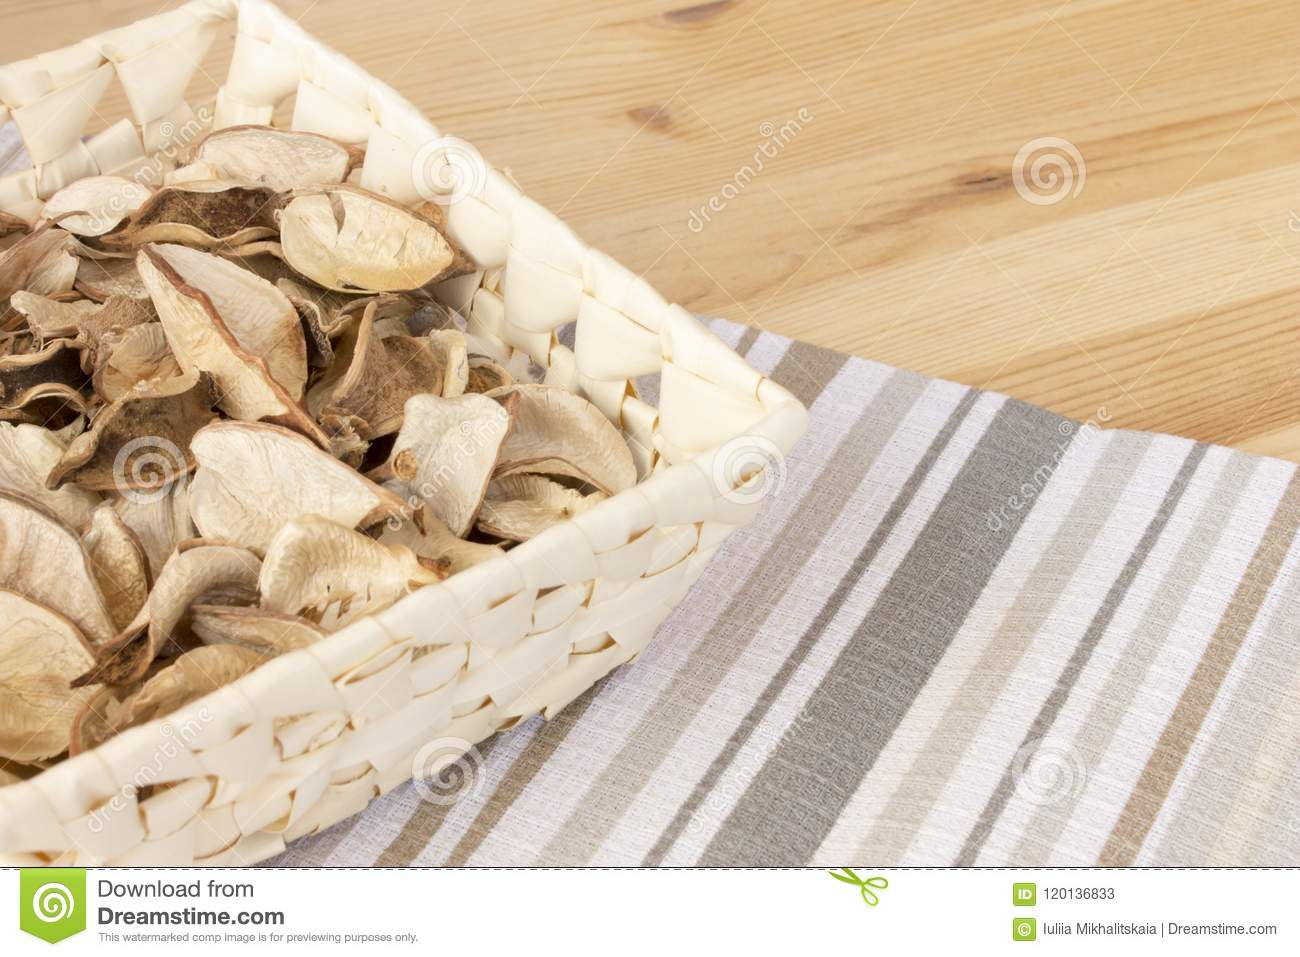 Basket with spicy dry plants on a light wooden background, covered with striped cloth